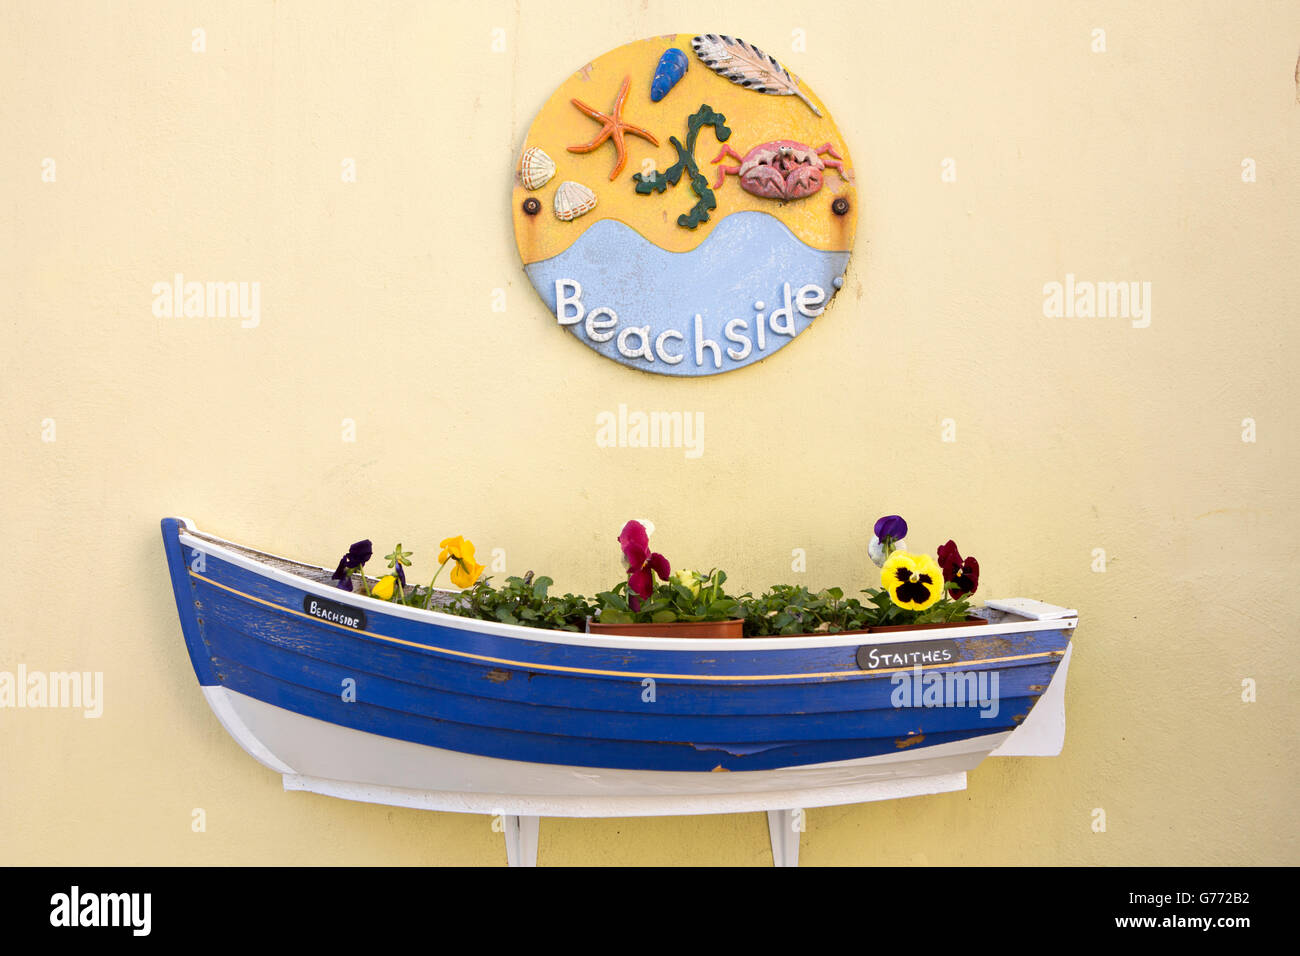 UK, England, Yorkshire, Staithes, boat shaped flower planter and ceramic Beachside house name plate - Stock Image